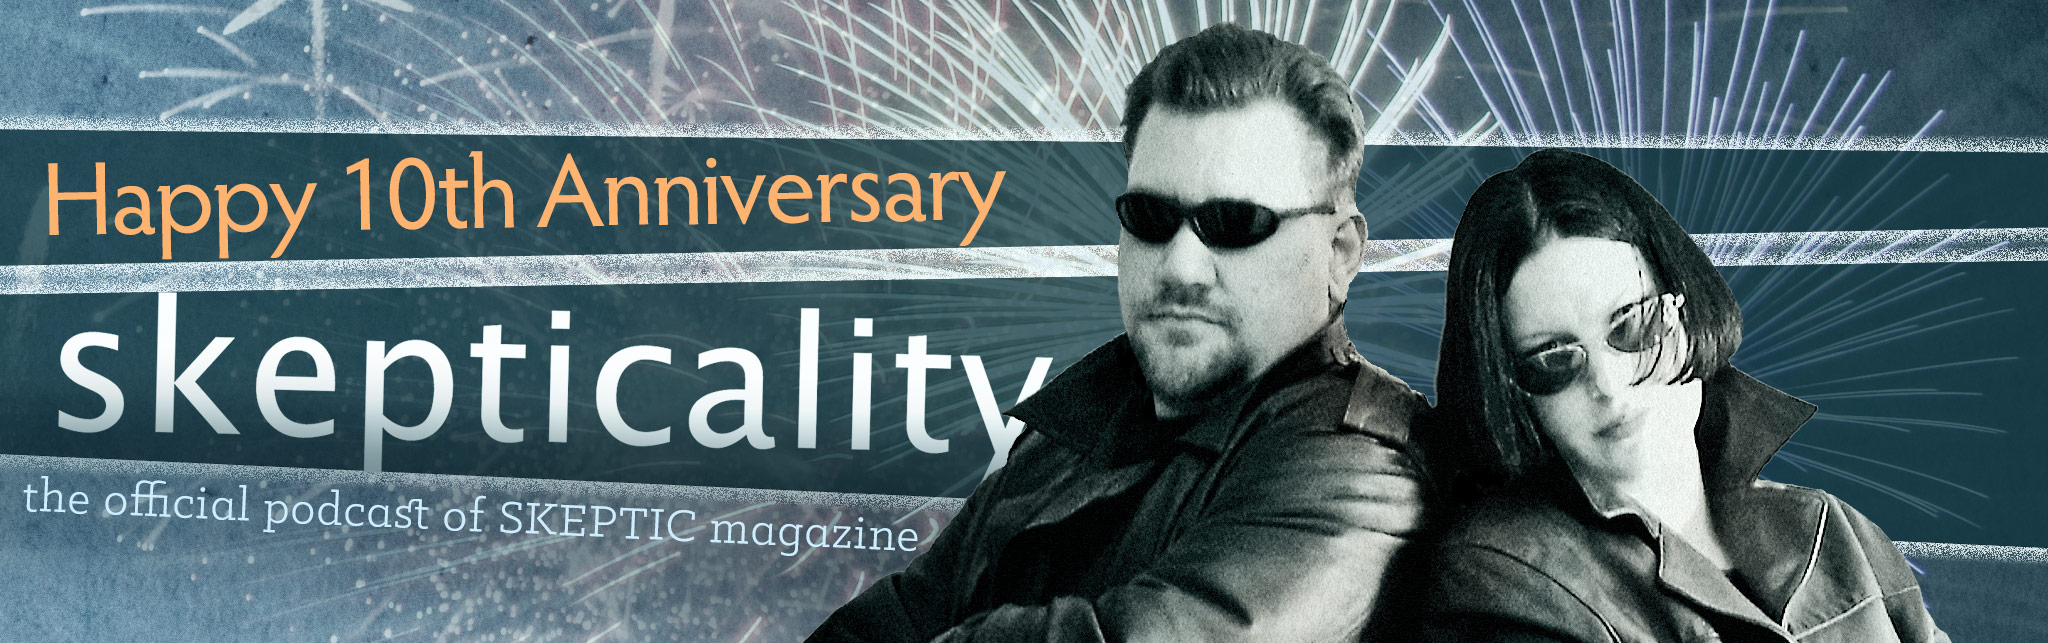 Celebrating an Unbelievable Decade of Skepticality MP3